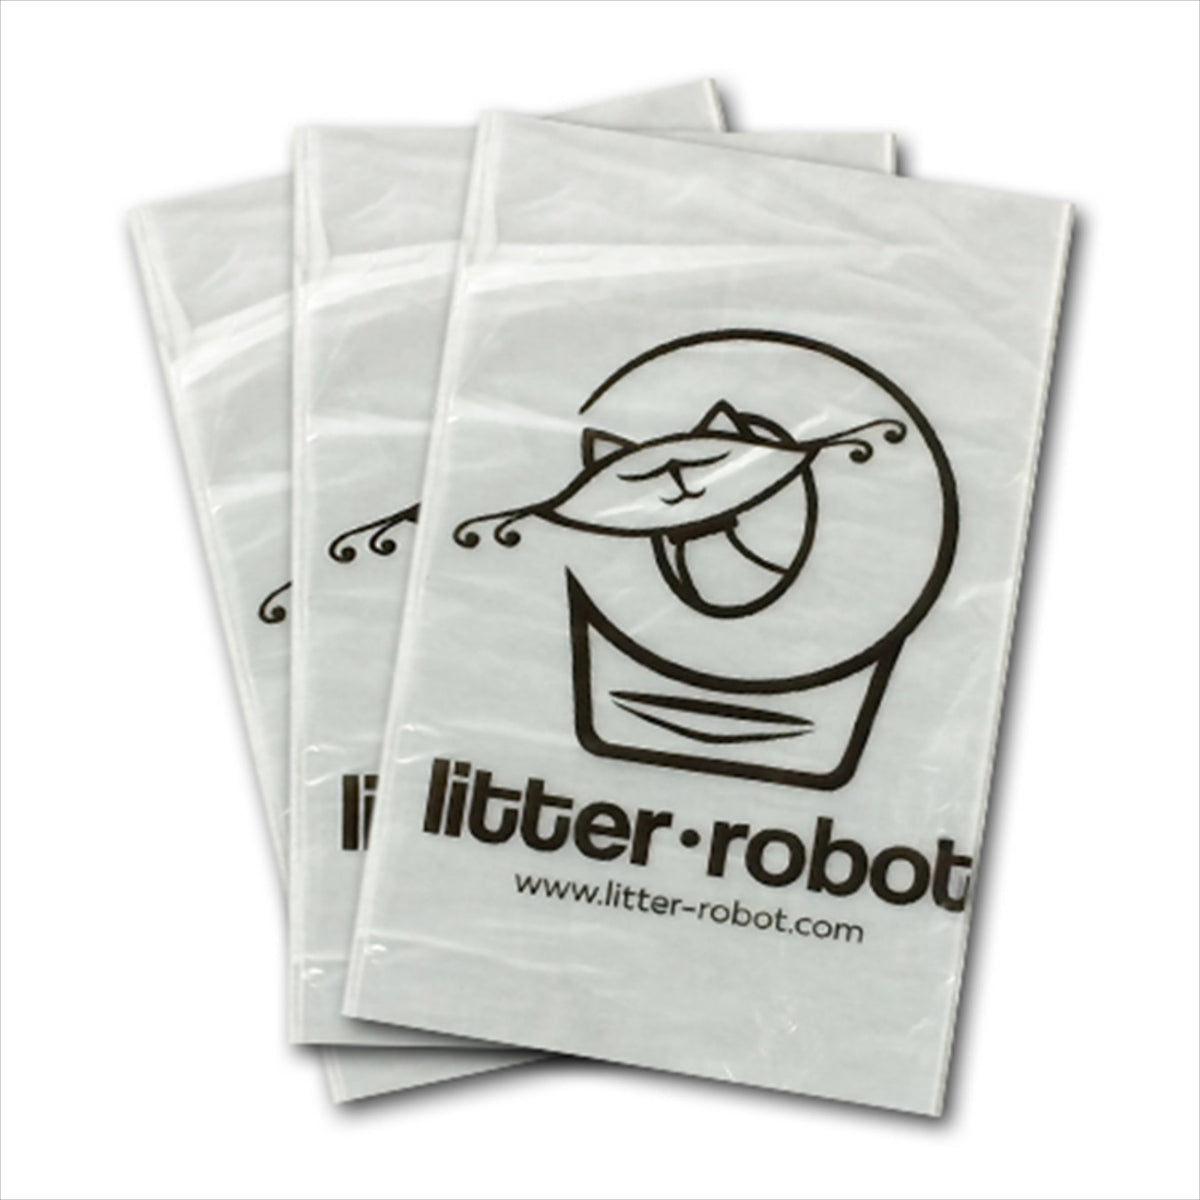 Litter-Robot Drawer Liners Replacement Bags (x25)